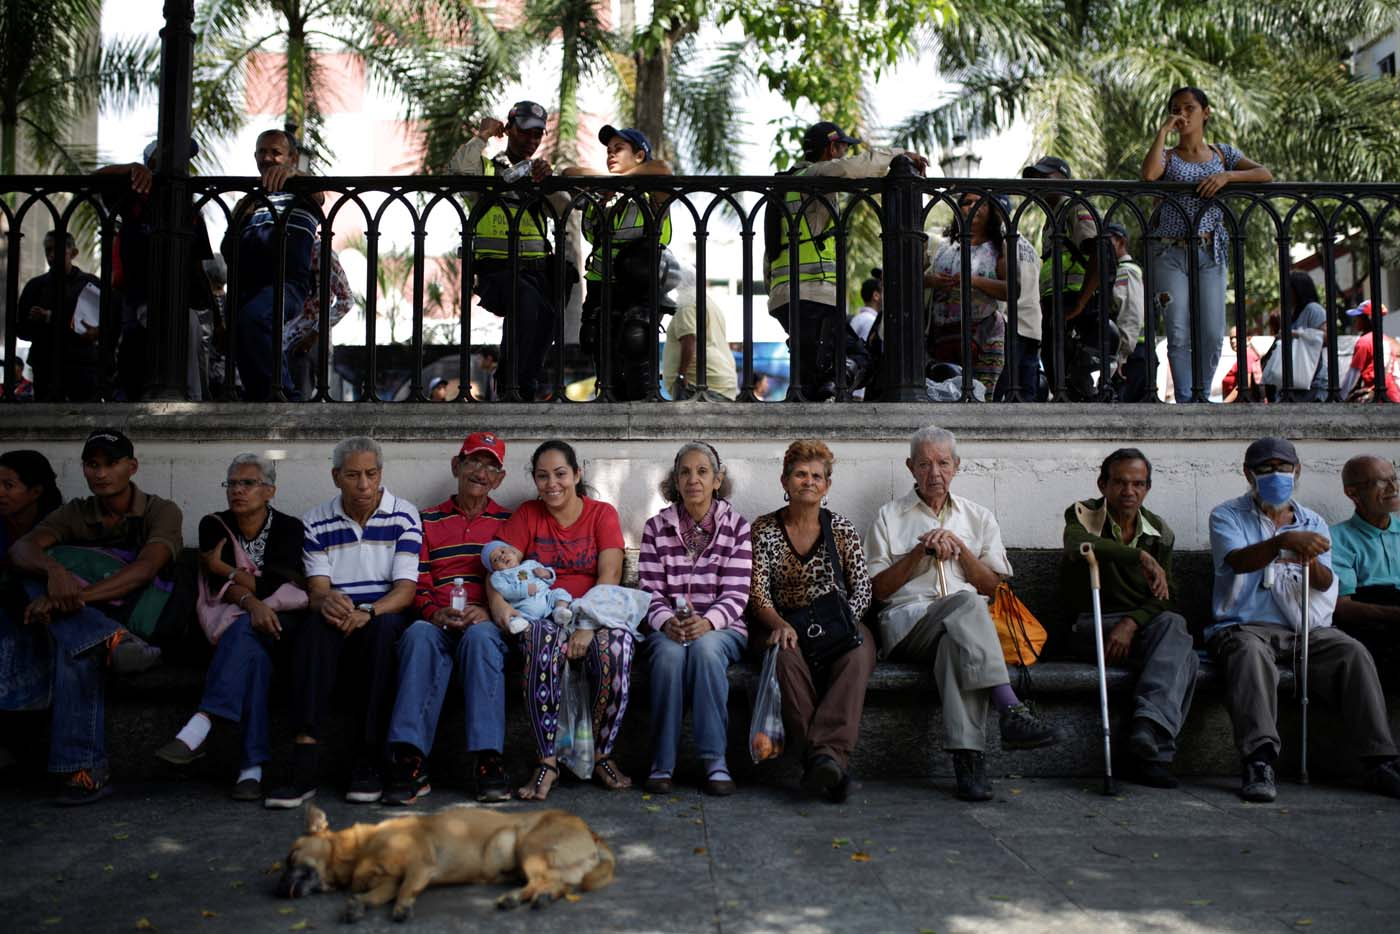 People wait toapply for a card that will register them for government social programmes, in Caracas, Venezuela January 20, 2017. REUTERS/Marco Bello